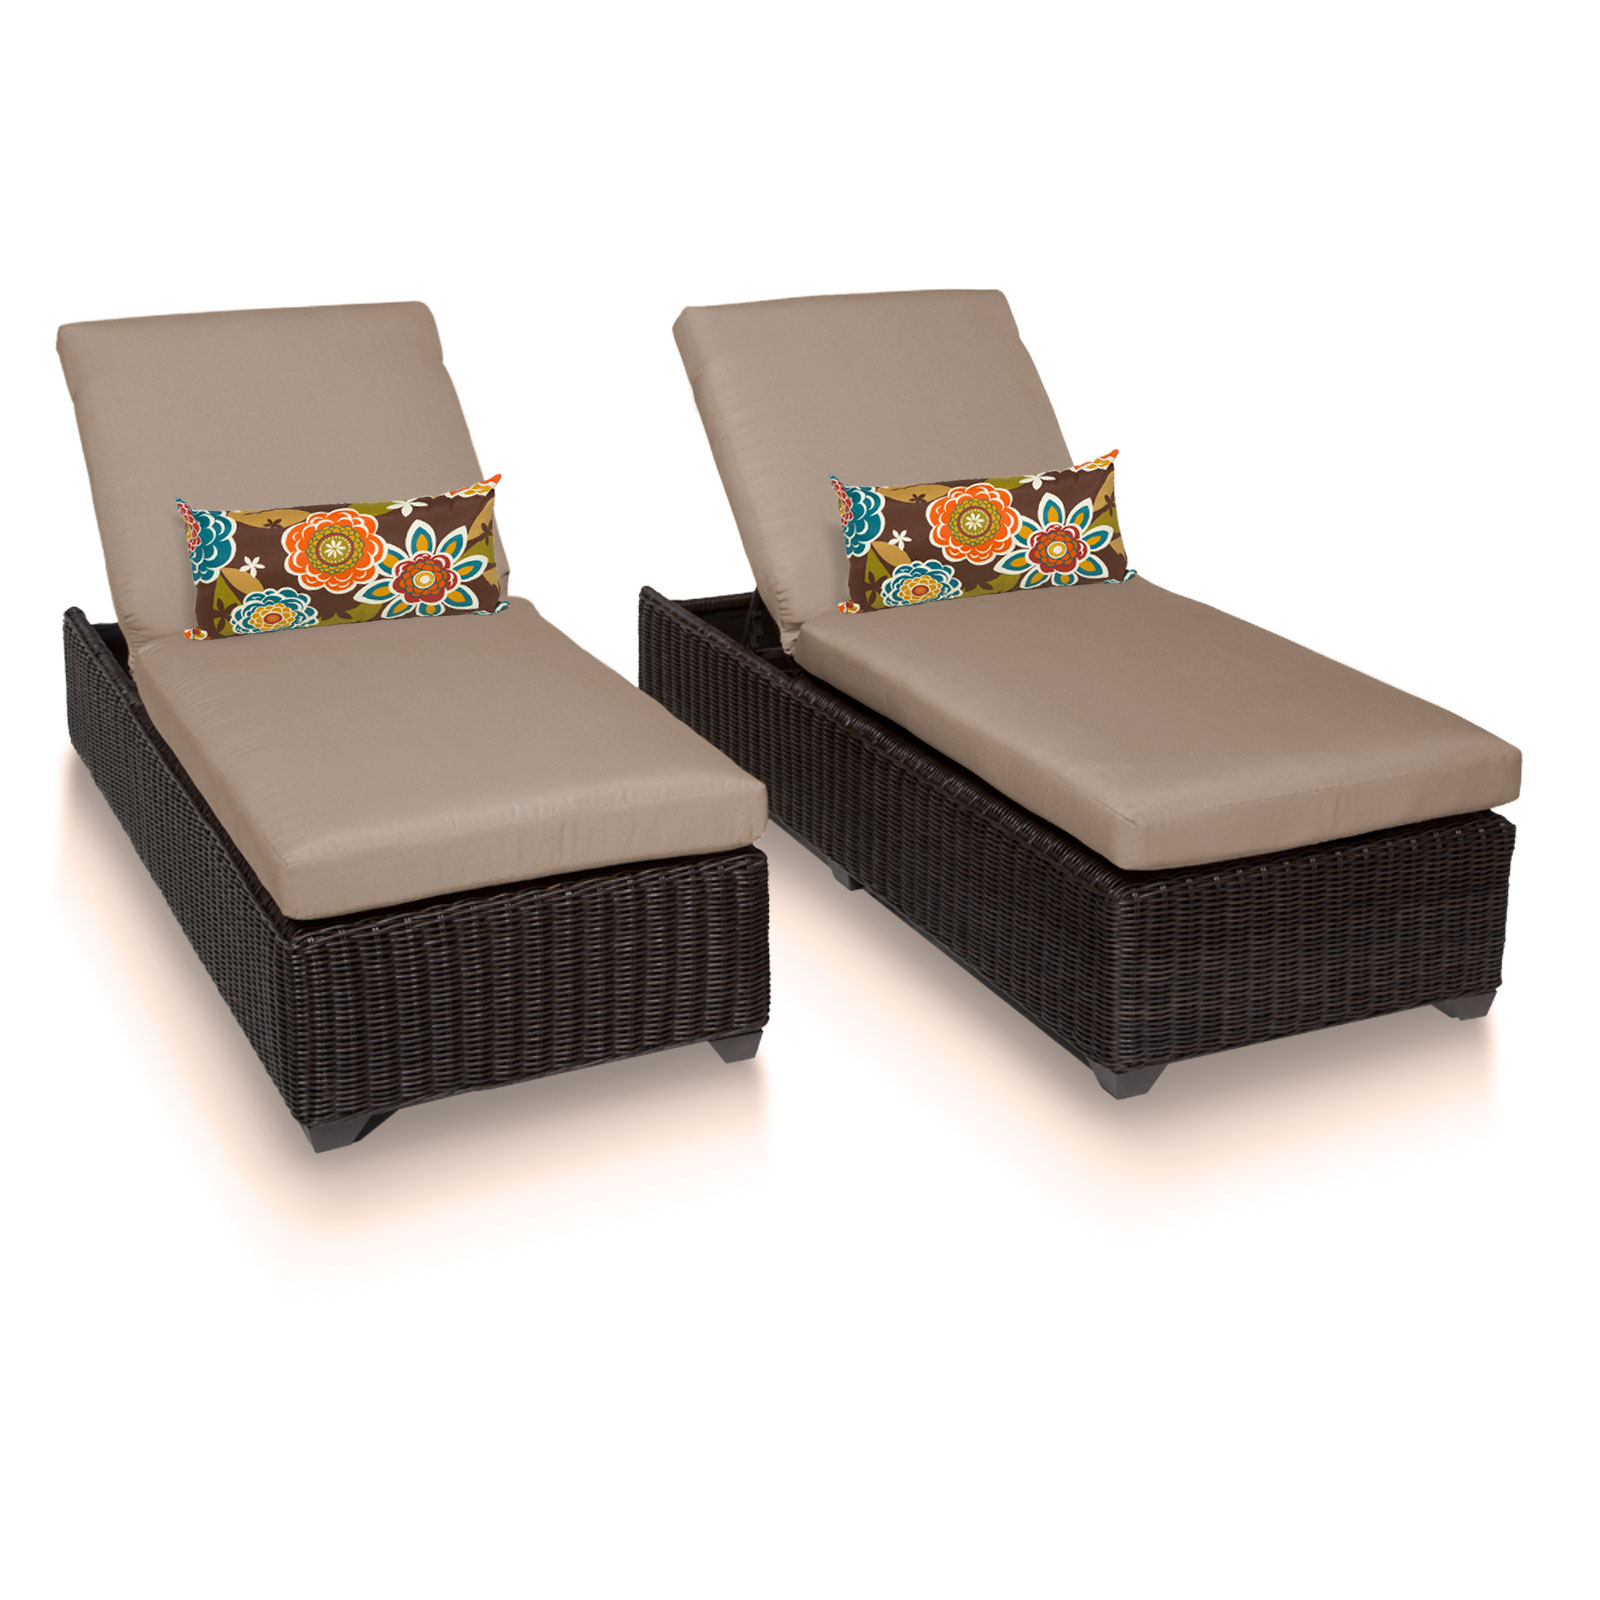 rustico chaise set of 2 outdoor wicker patio furniture